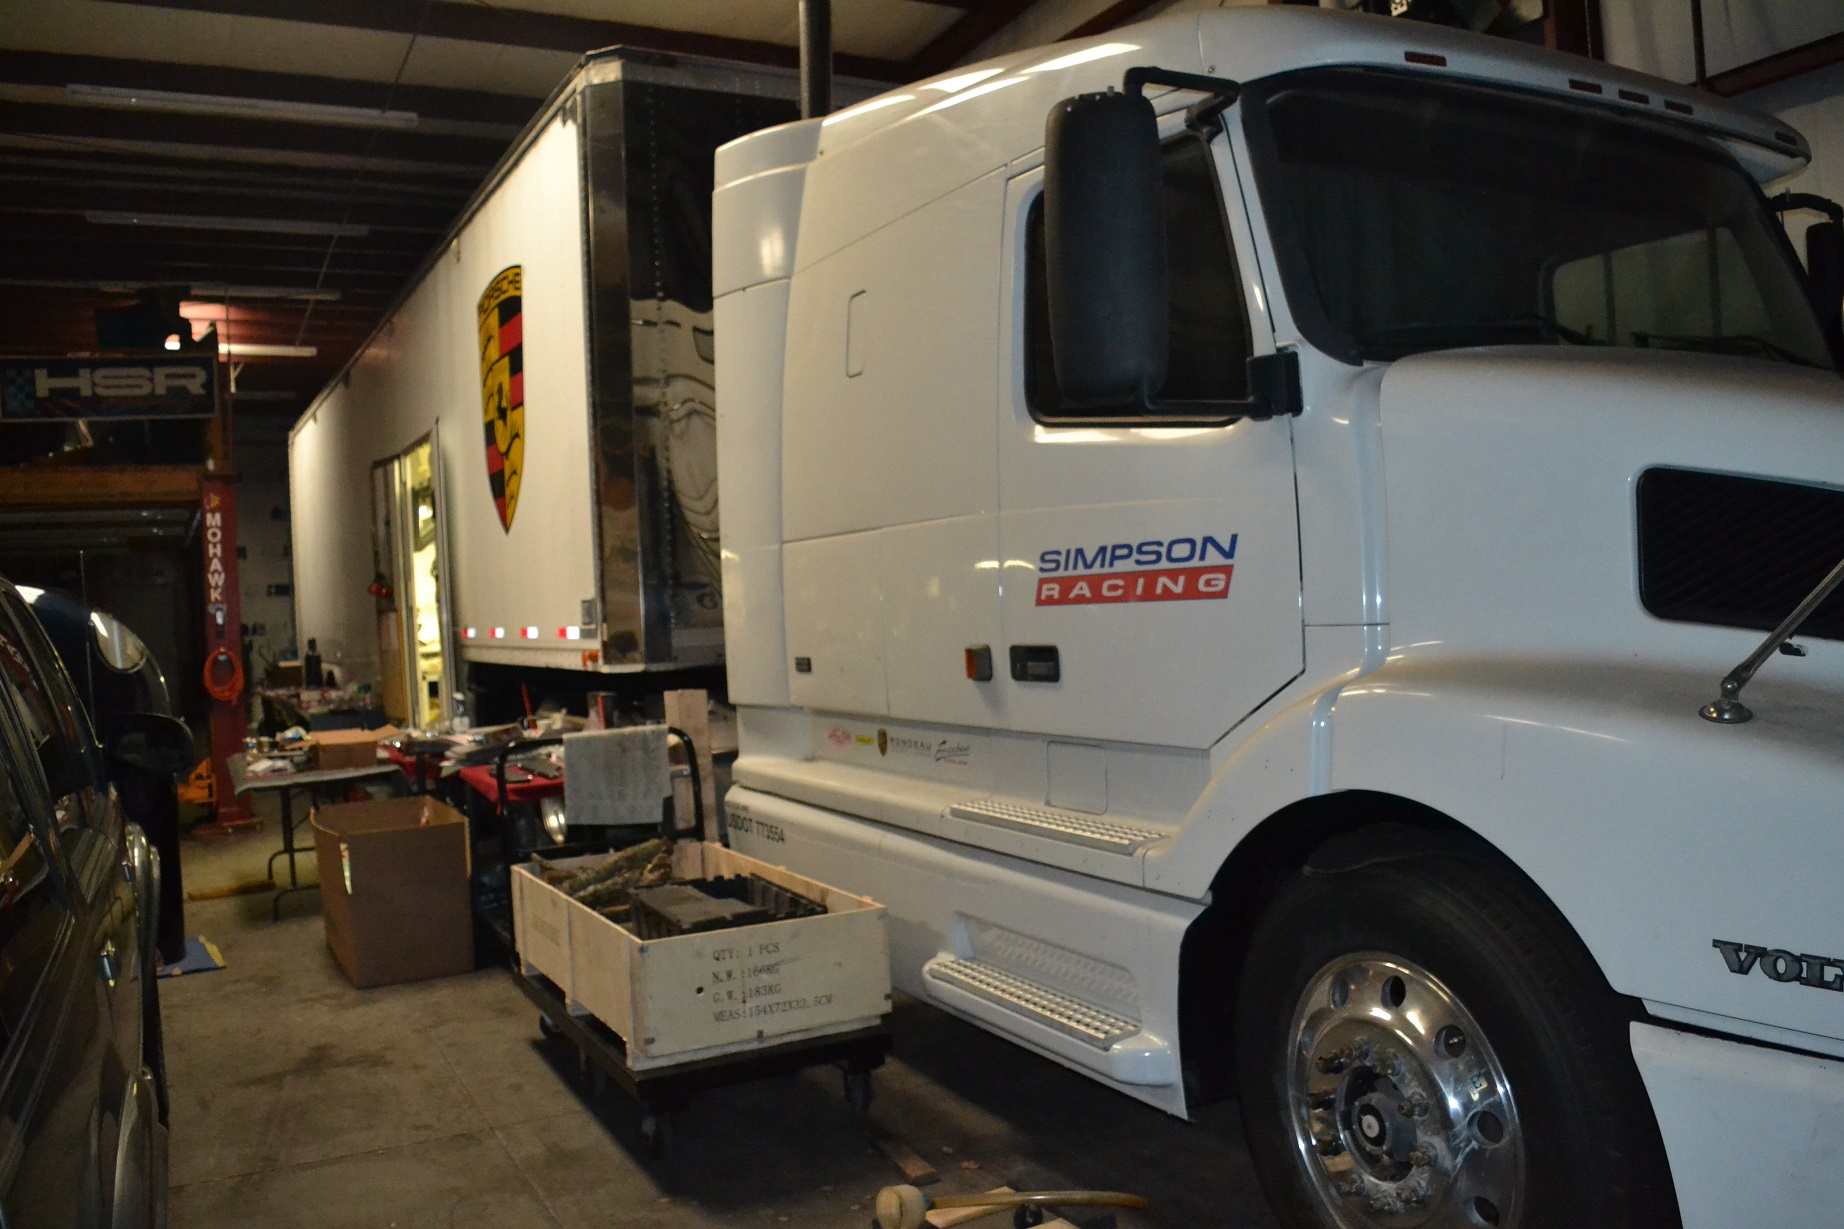 2000 Volvo Tractor & 1989 Hi-Tech Race Trailer For Sale in Buford - $65000